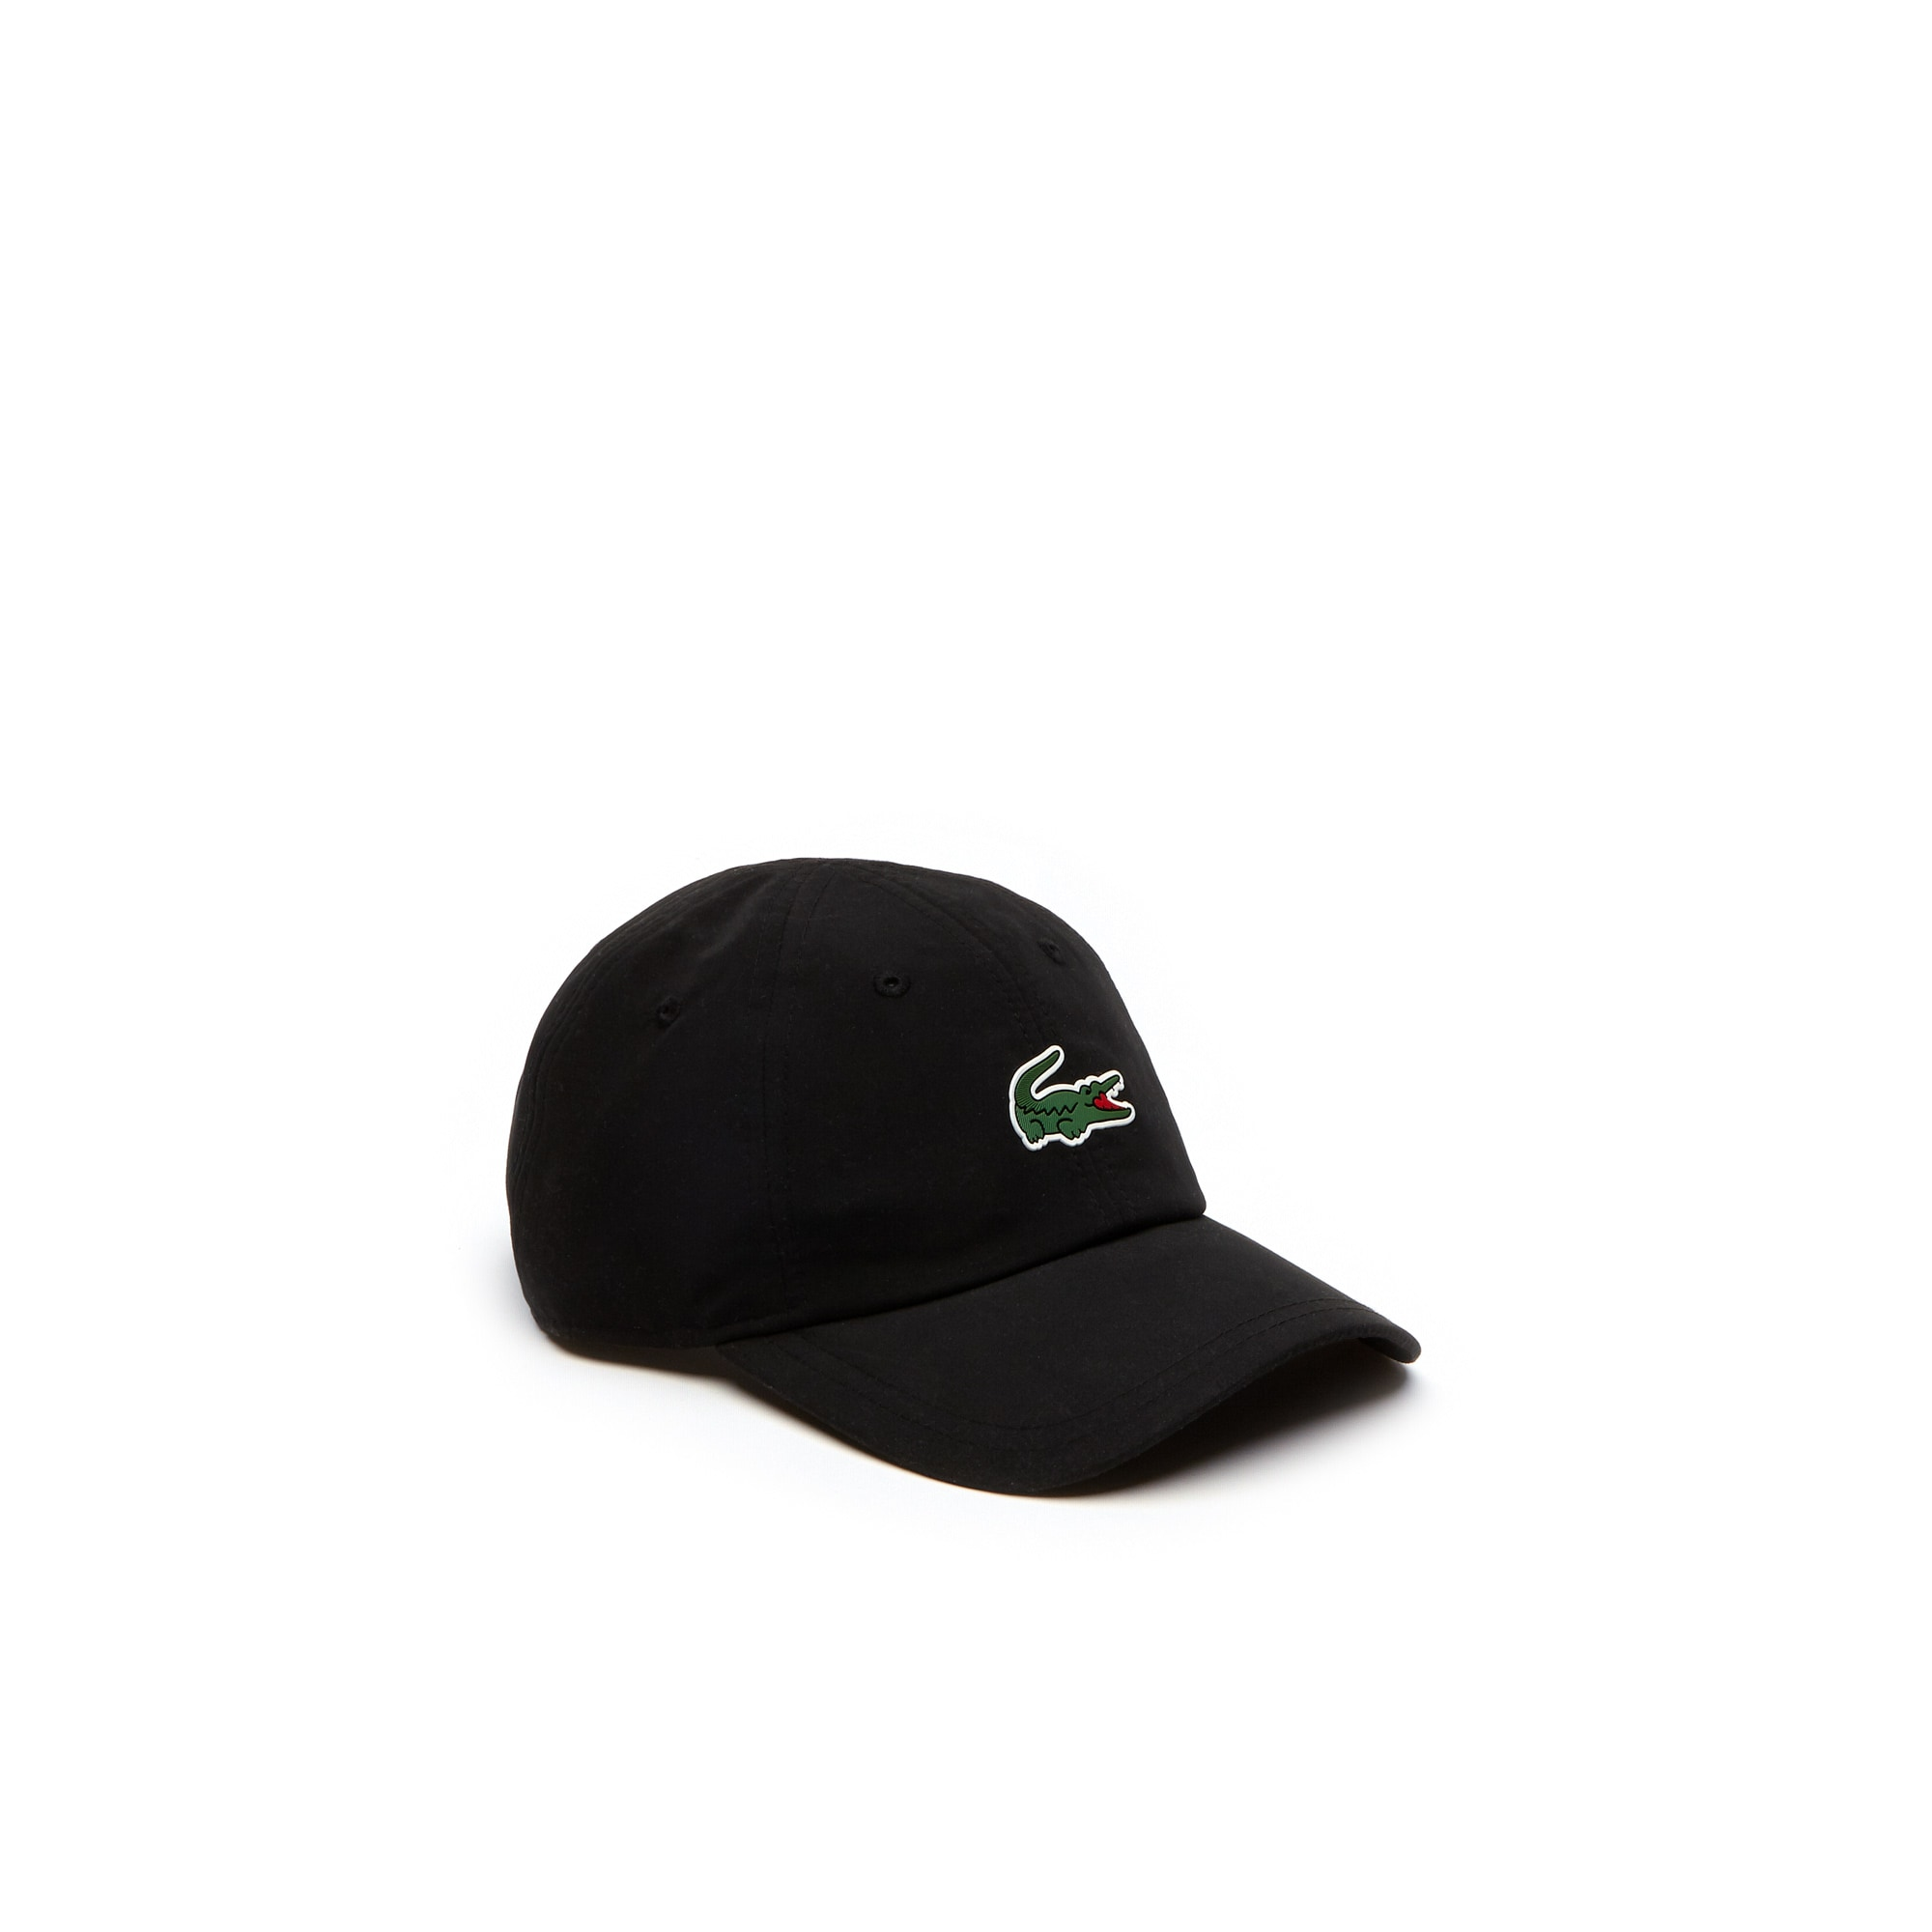 e72faa1cf44d2 Men s Caps and Hats   Men s Accessories   LACOSTE